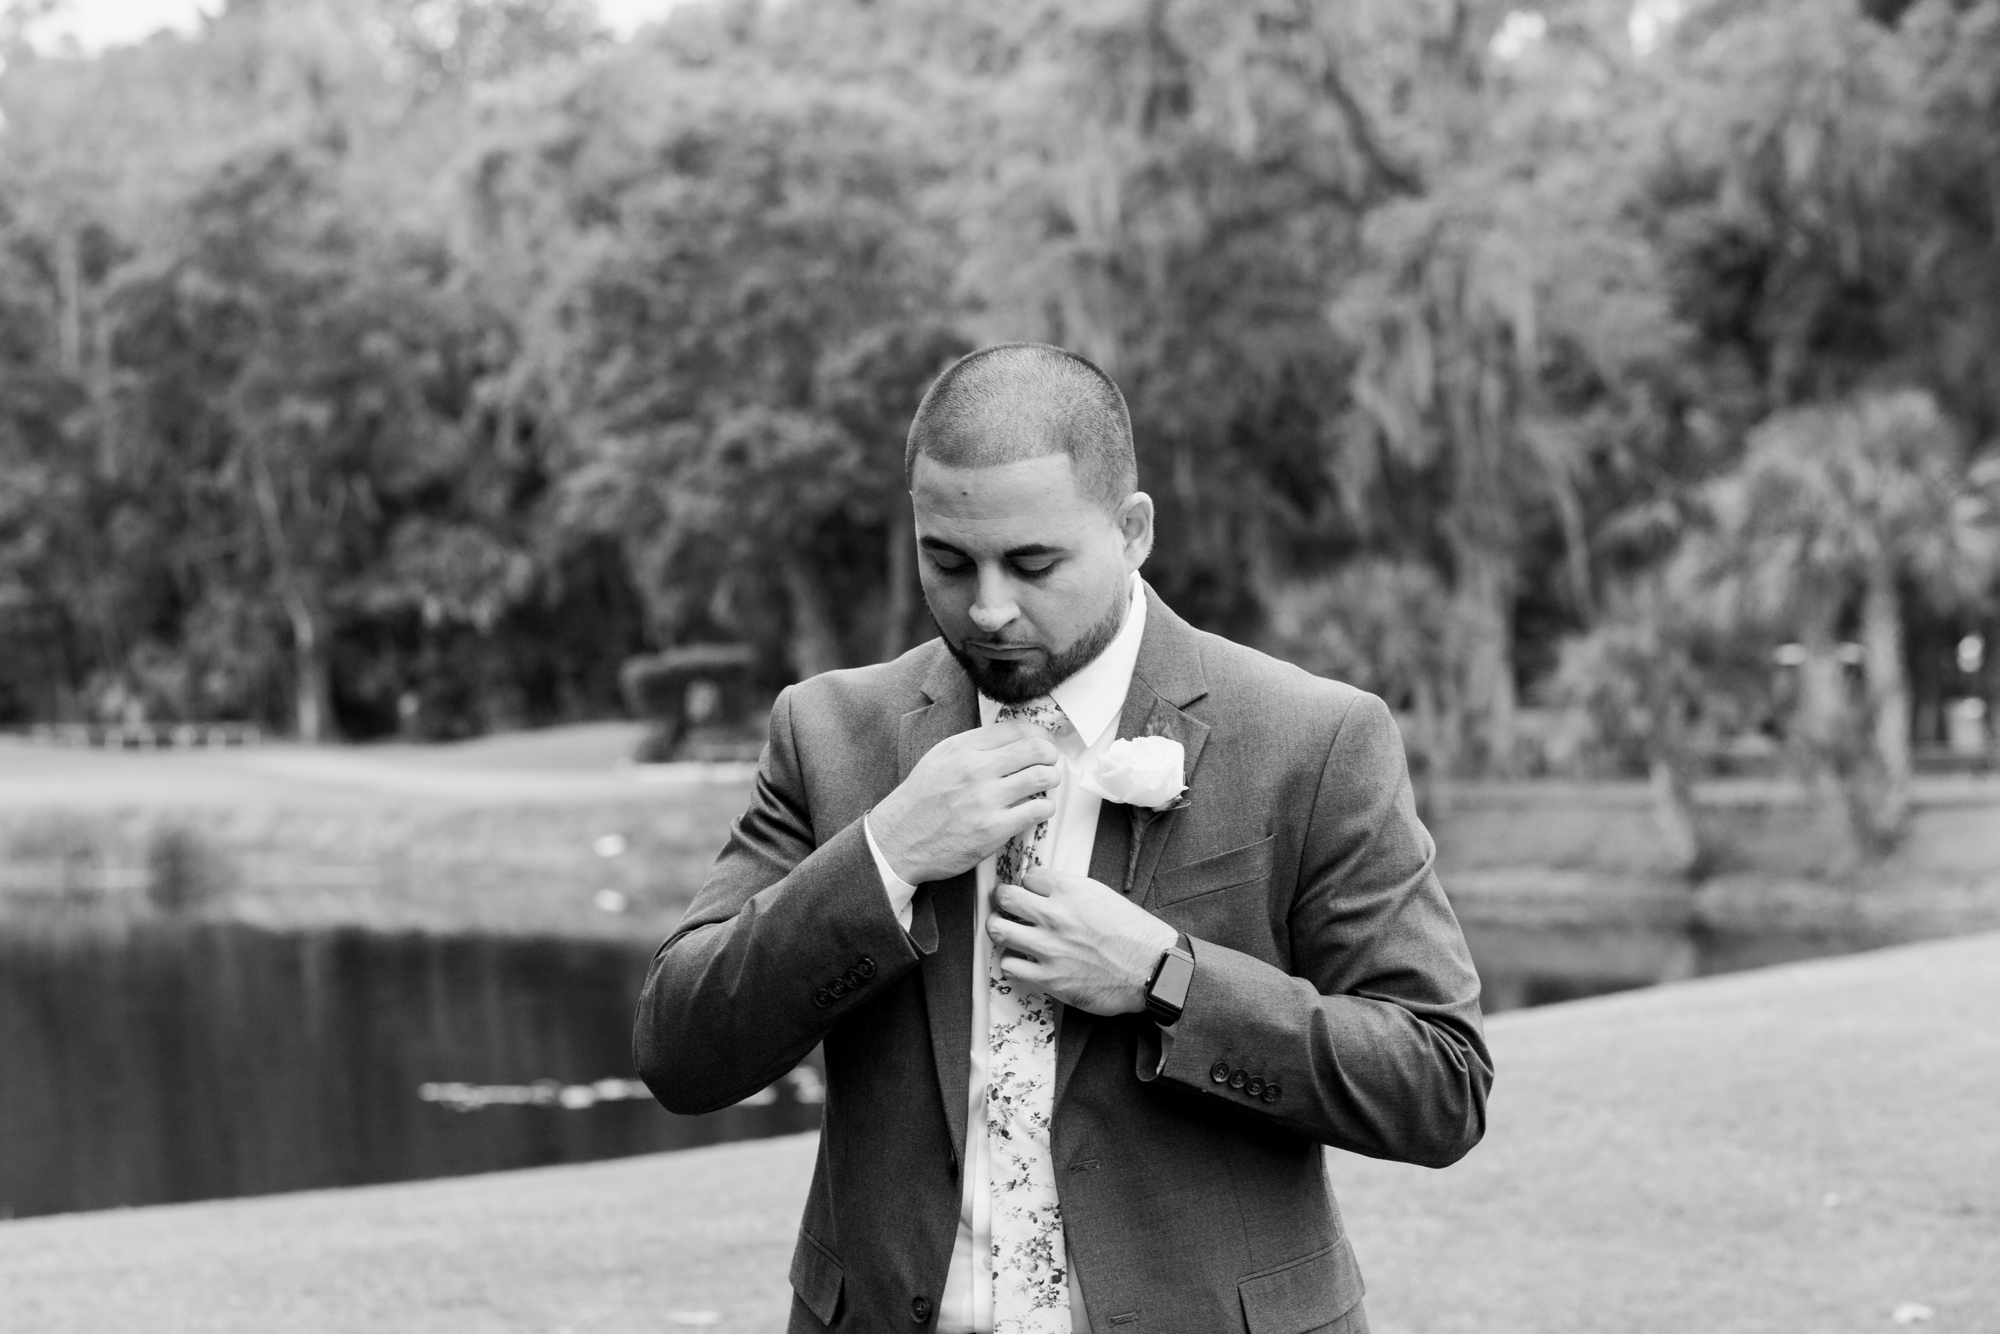 tampa-palms-wedding-christina-luis-IMG_0254.jpg